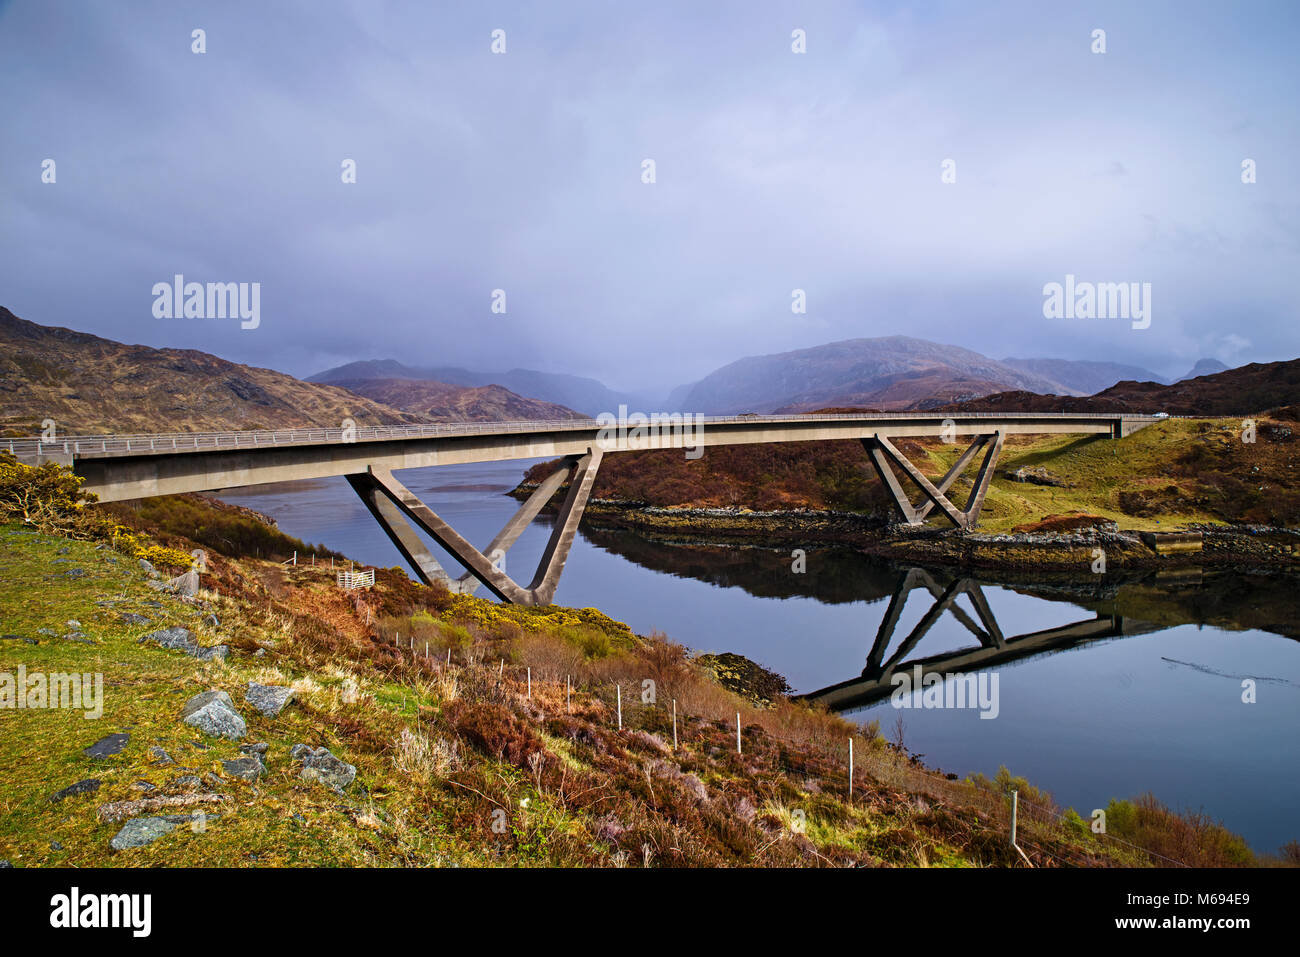 North Coast 500 - The road bridge at Kylesku carrying the A984 over Caolas Cumhann, by Loch a' Chairn Bhain, - Stock Image